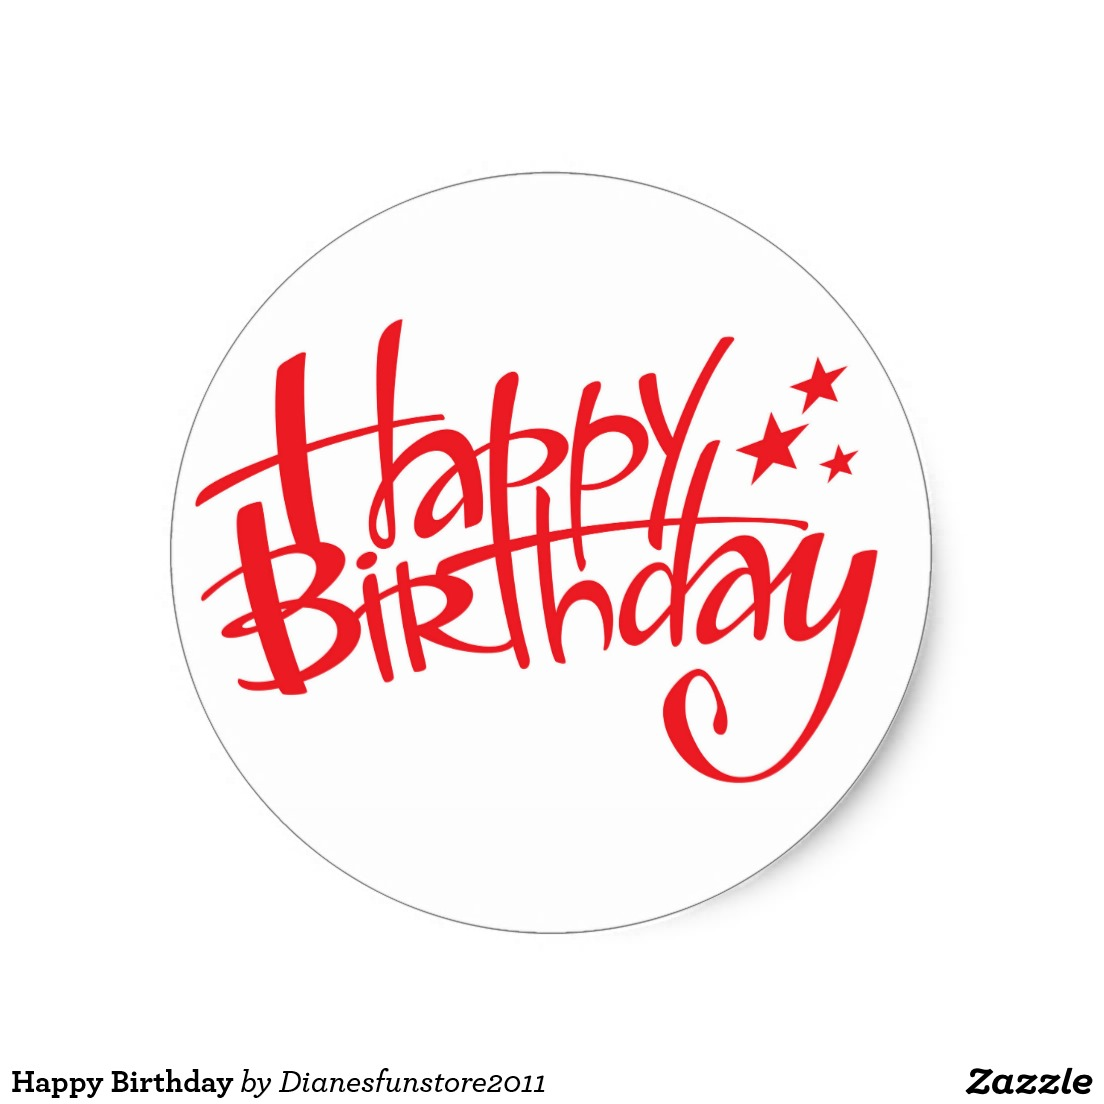 birthday stickers for text messages ; 4d44365ad741725ec5c5a458672e0263